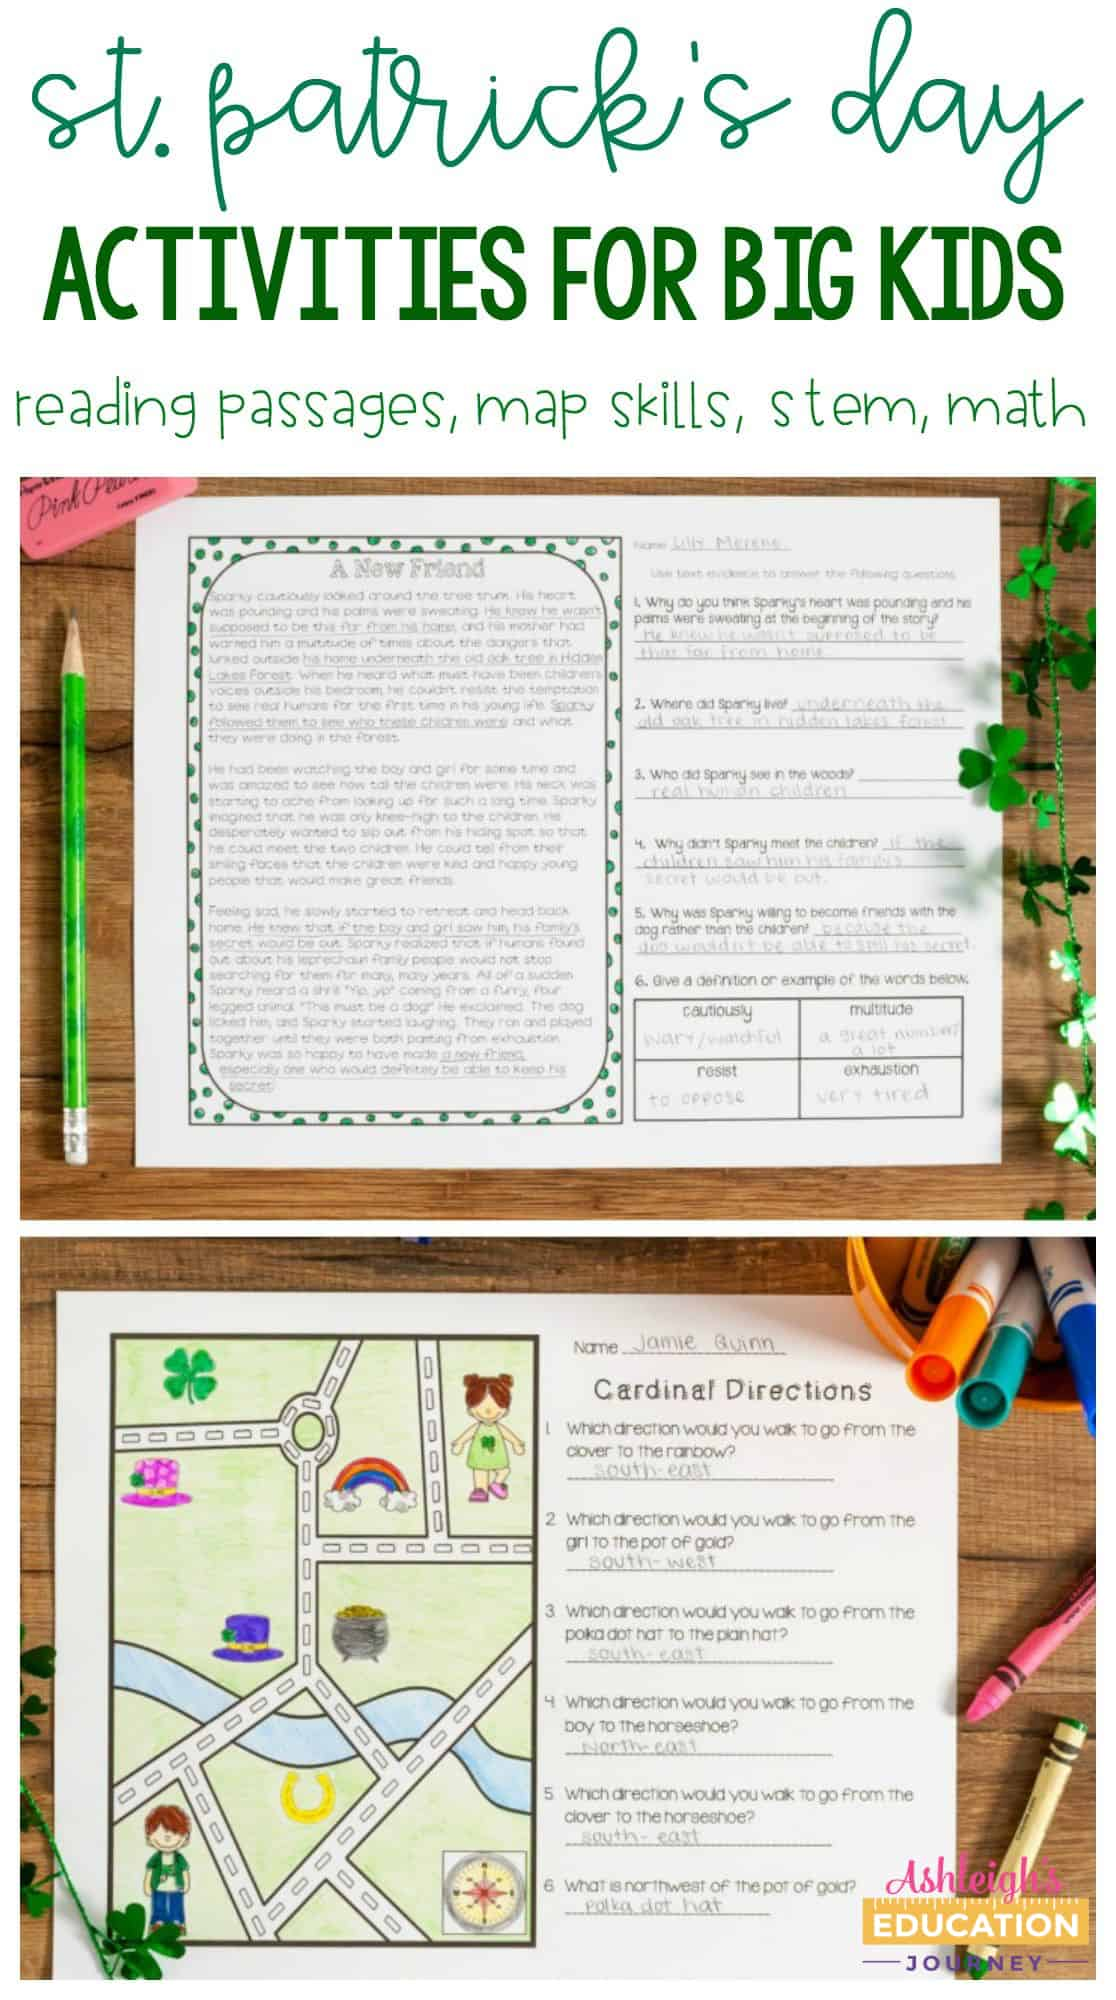 St. Patrick's Day activities for big kids text with example activity sheets.